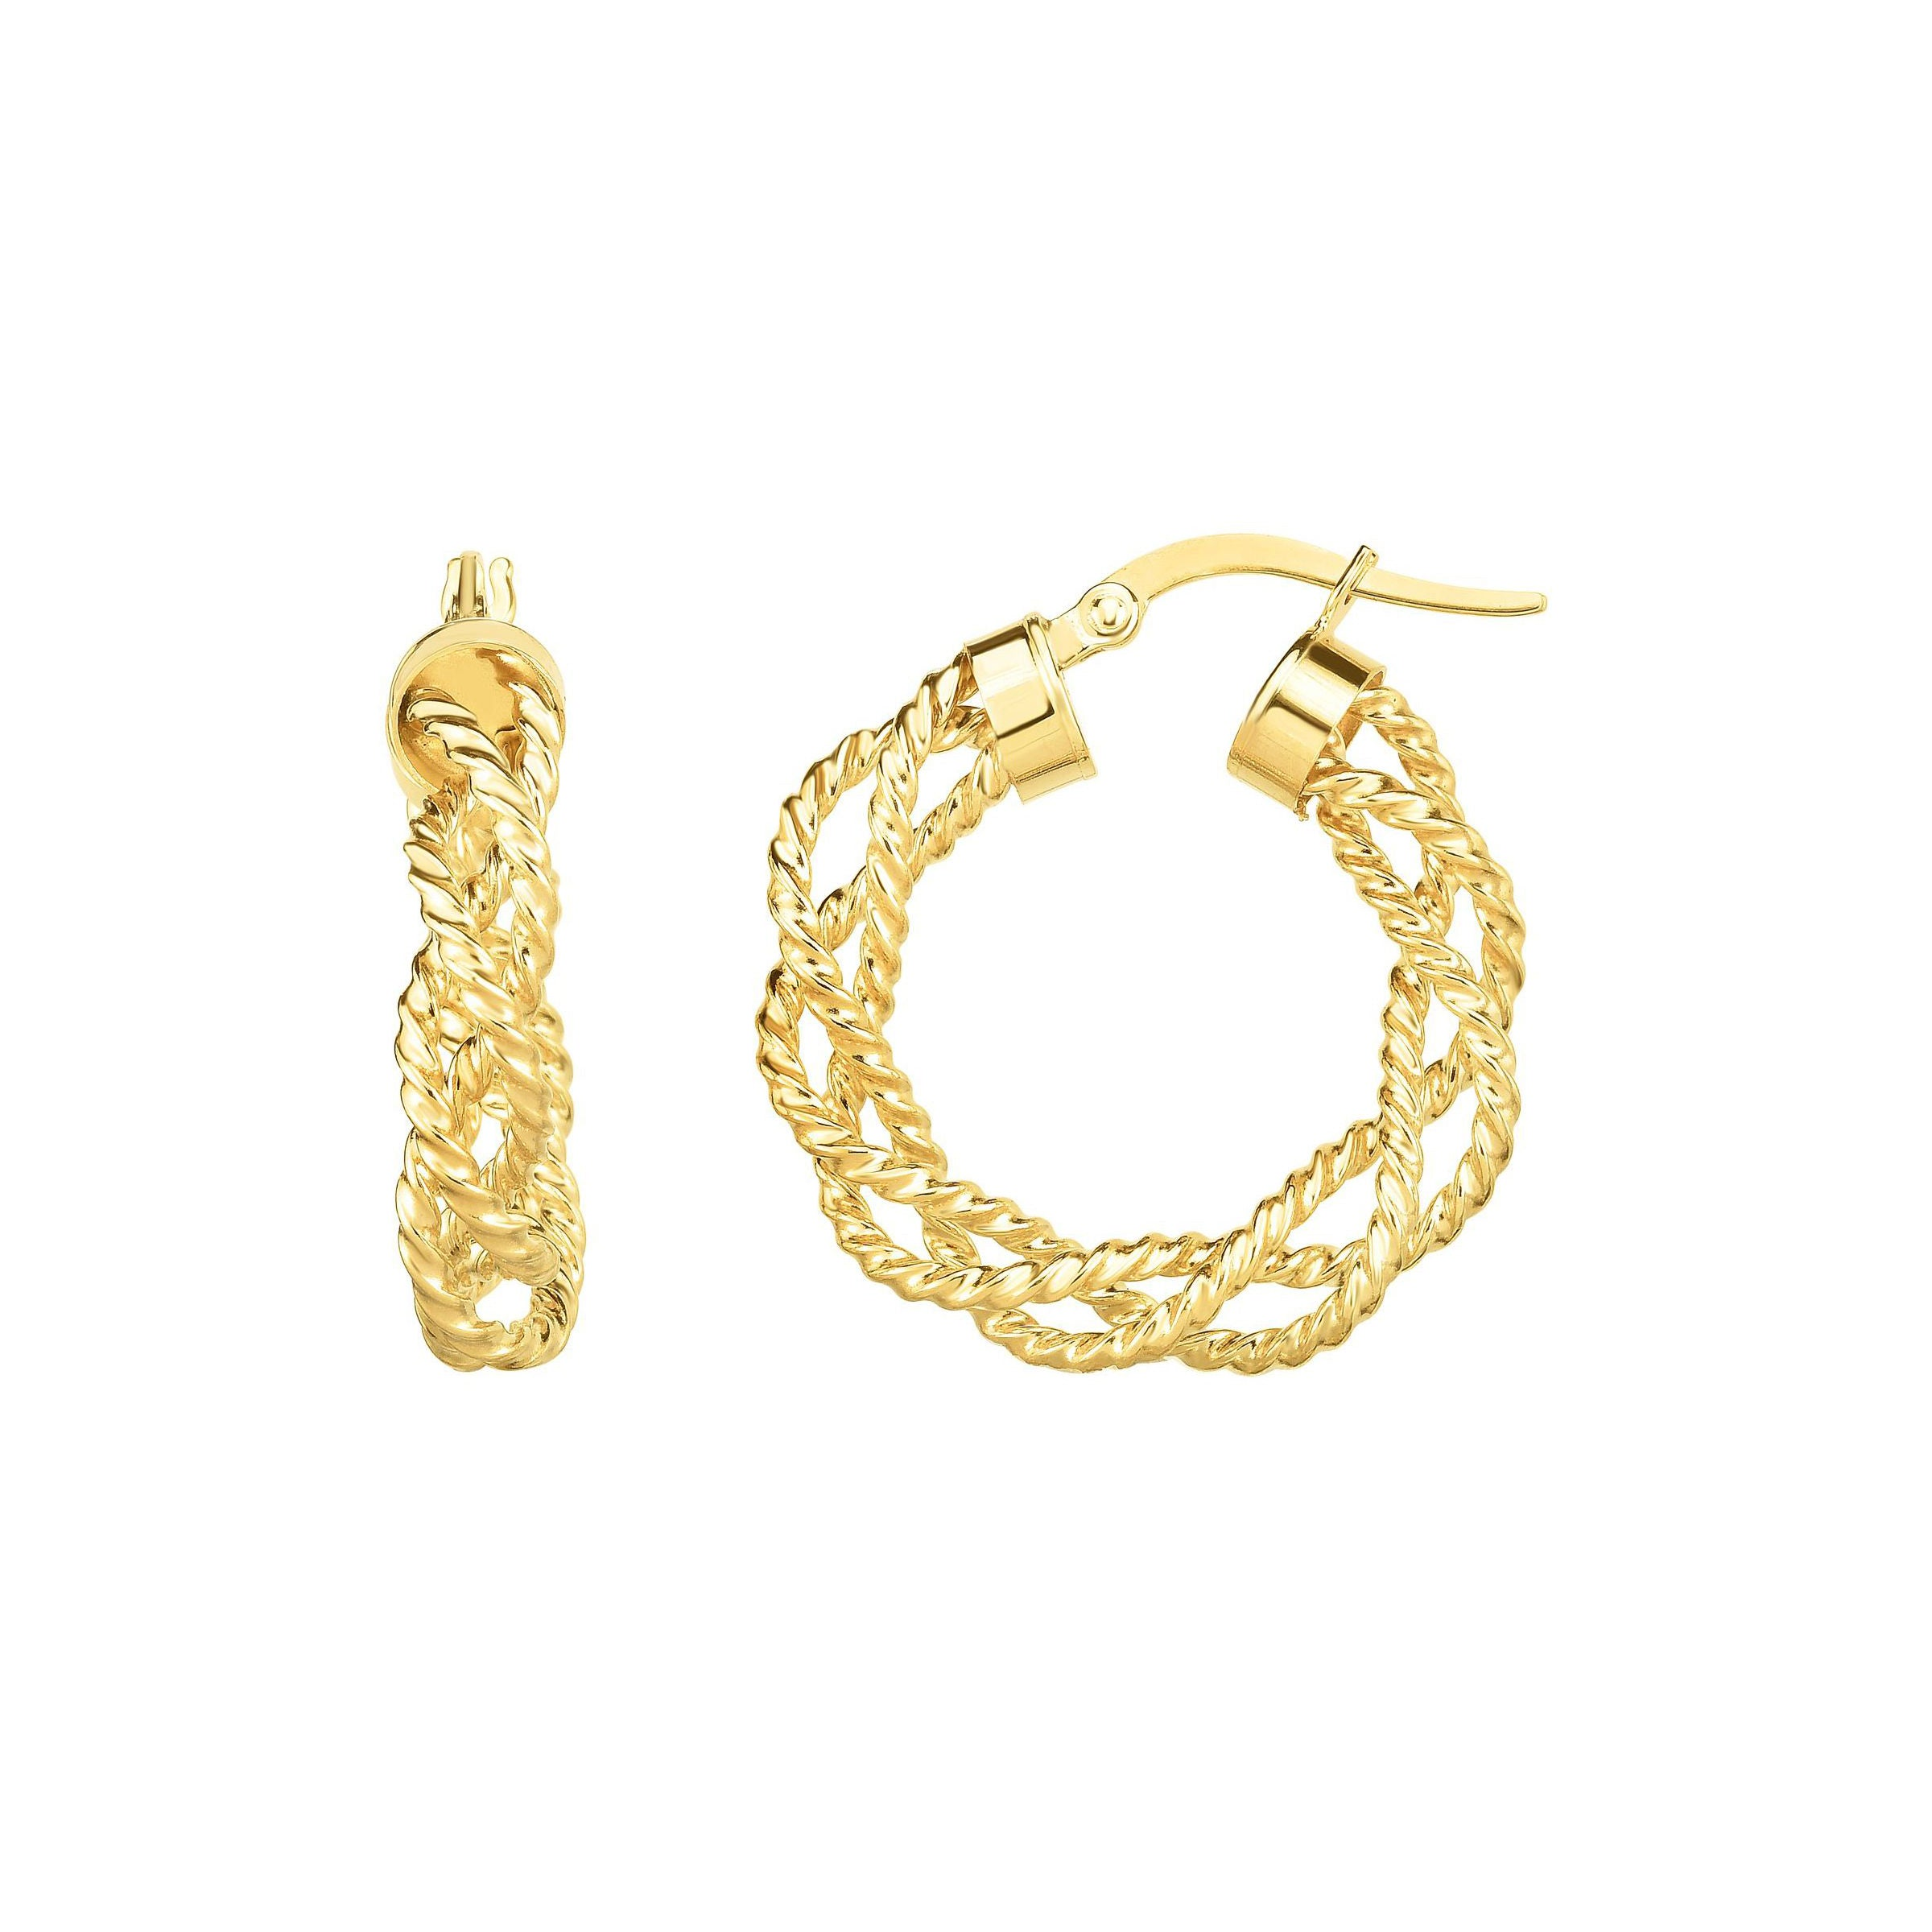 Looping Spiral Hoop Earrings, .60 Inch, 14K Yellow Gold